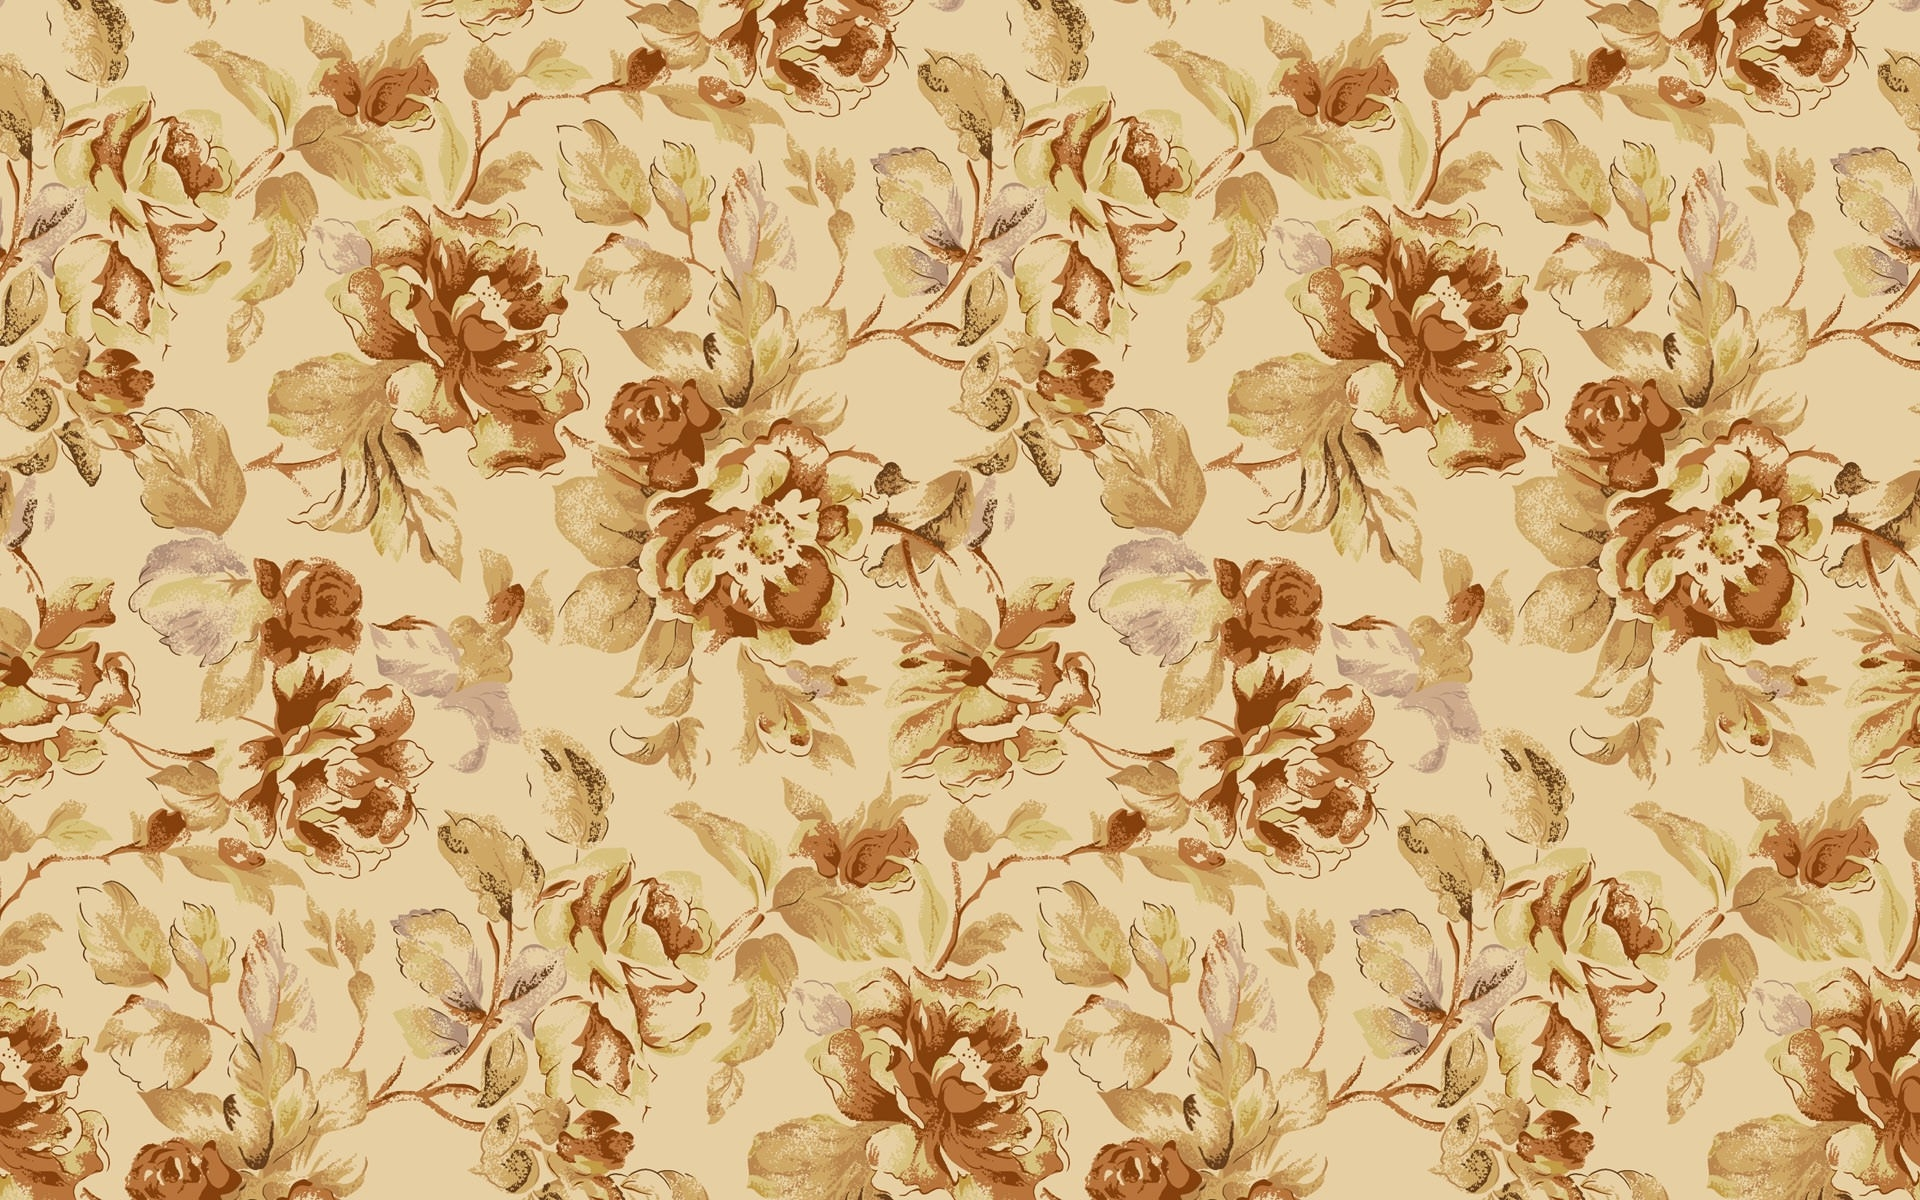 Simple Vintage Flowers background image